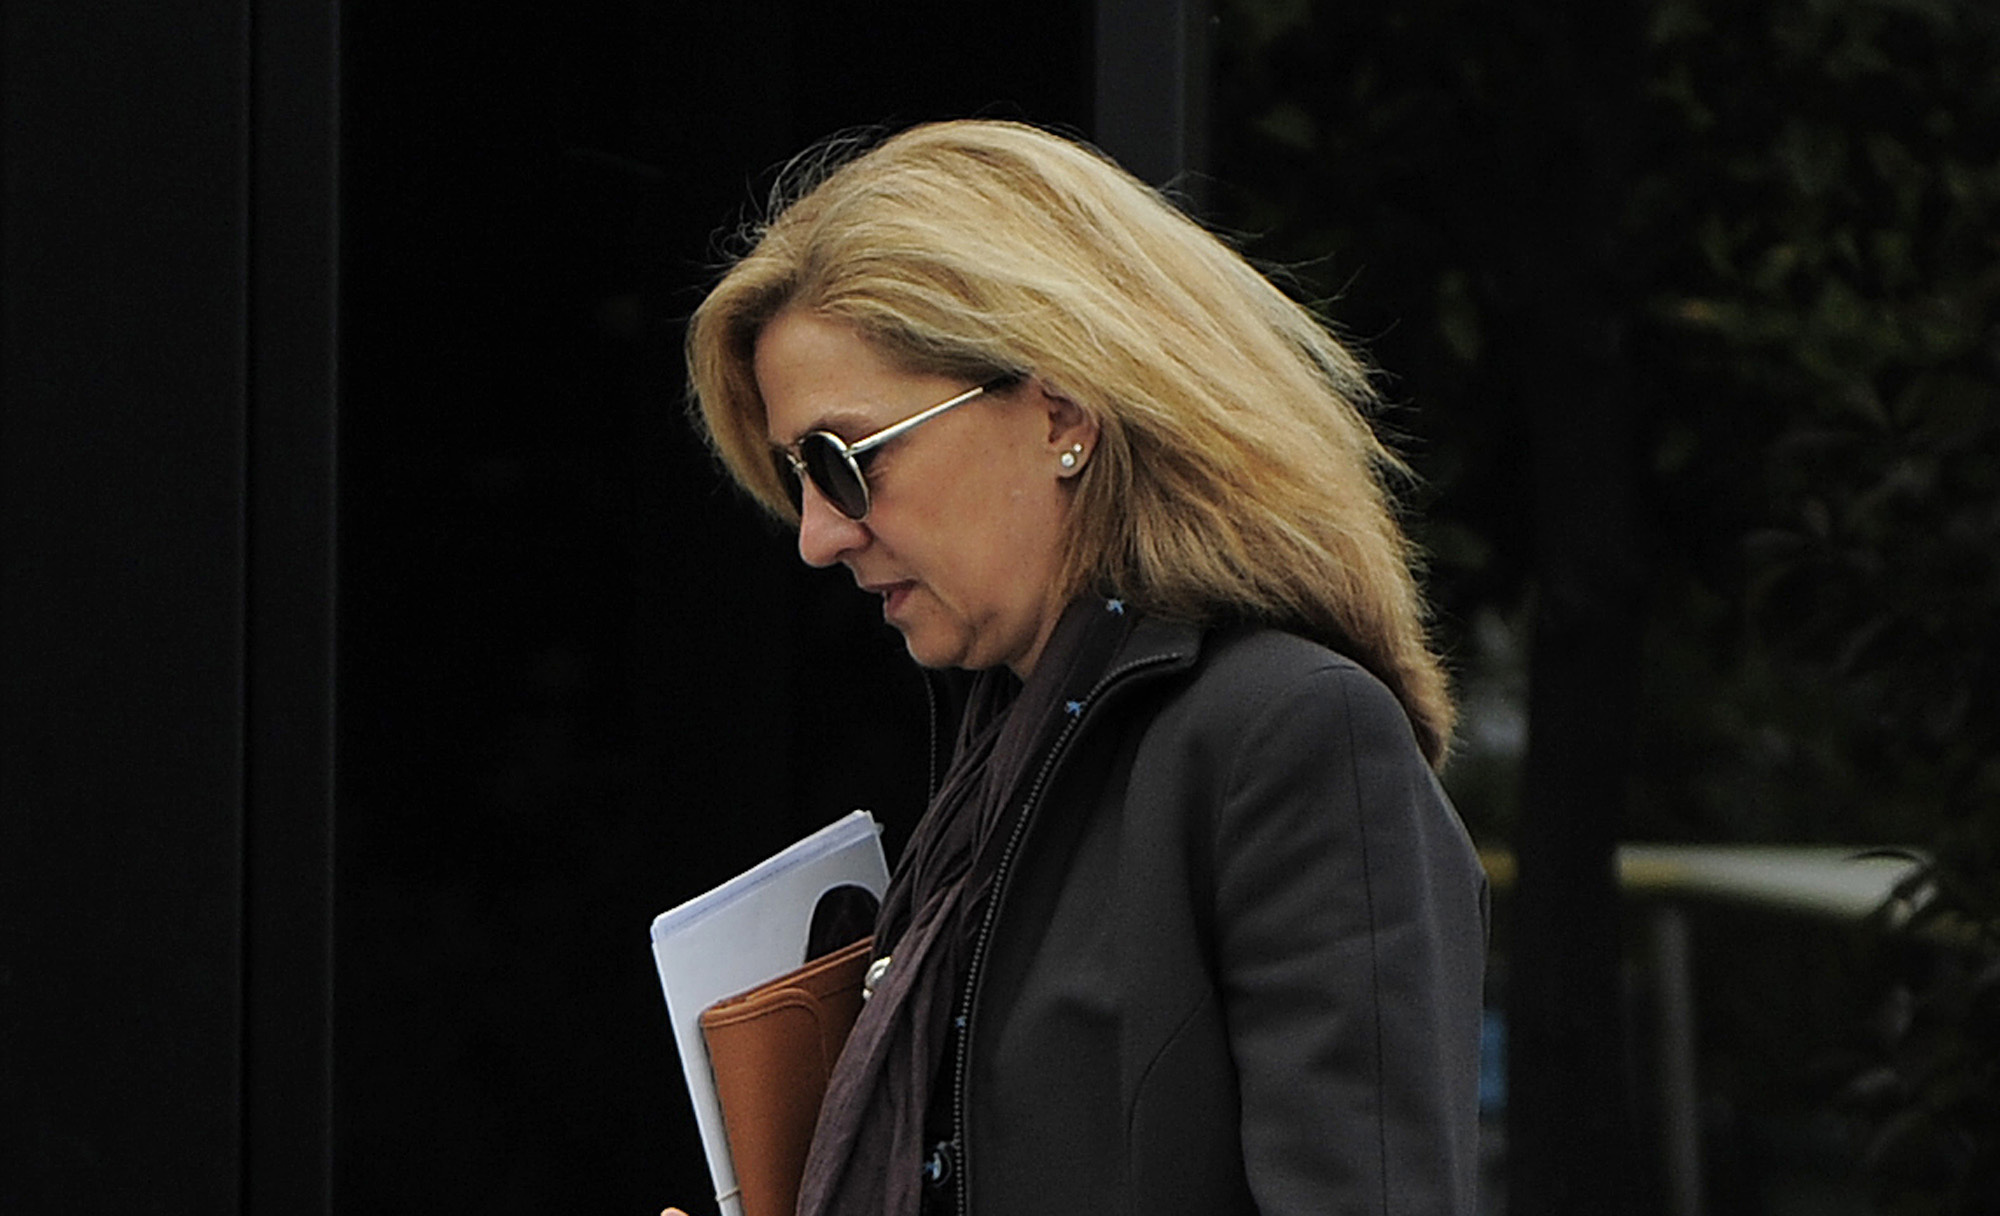 FILE - In this April 5, 2013 file photo, Spain's Princess Cristina is photographed as she walks toward her office in Barcelona, Spain. Photo: AP